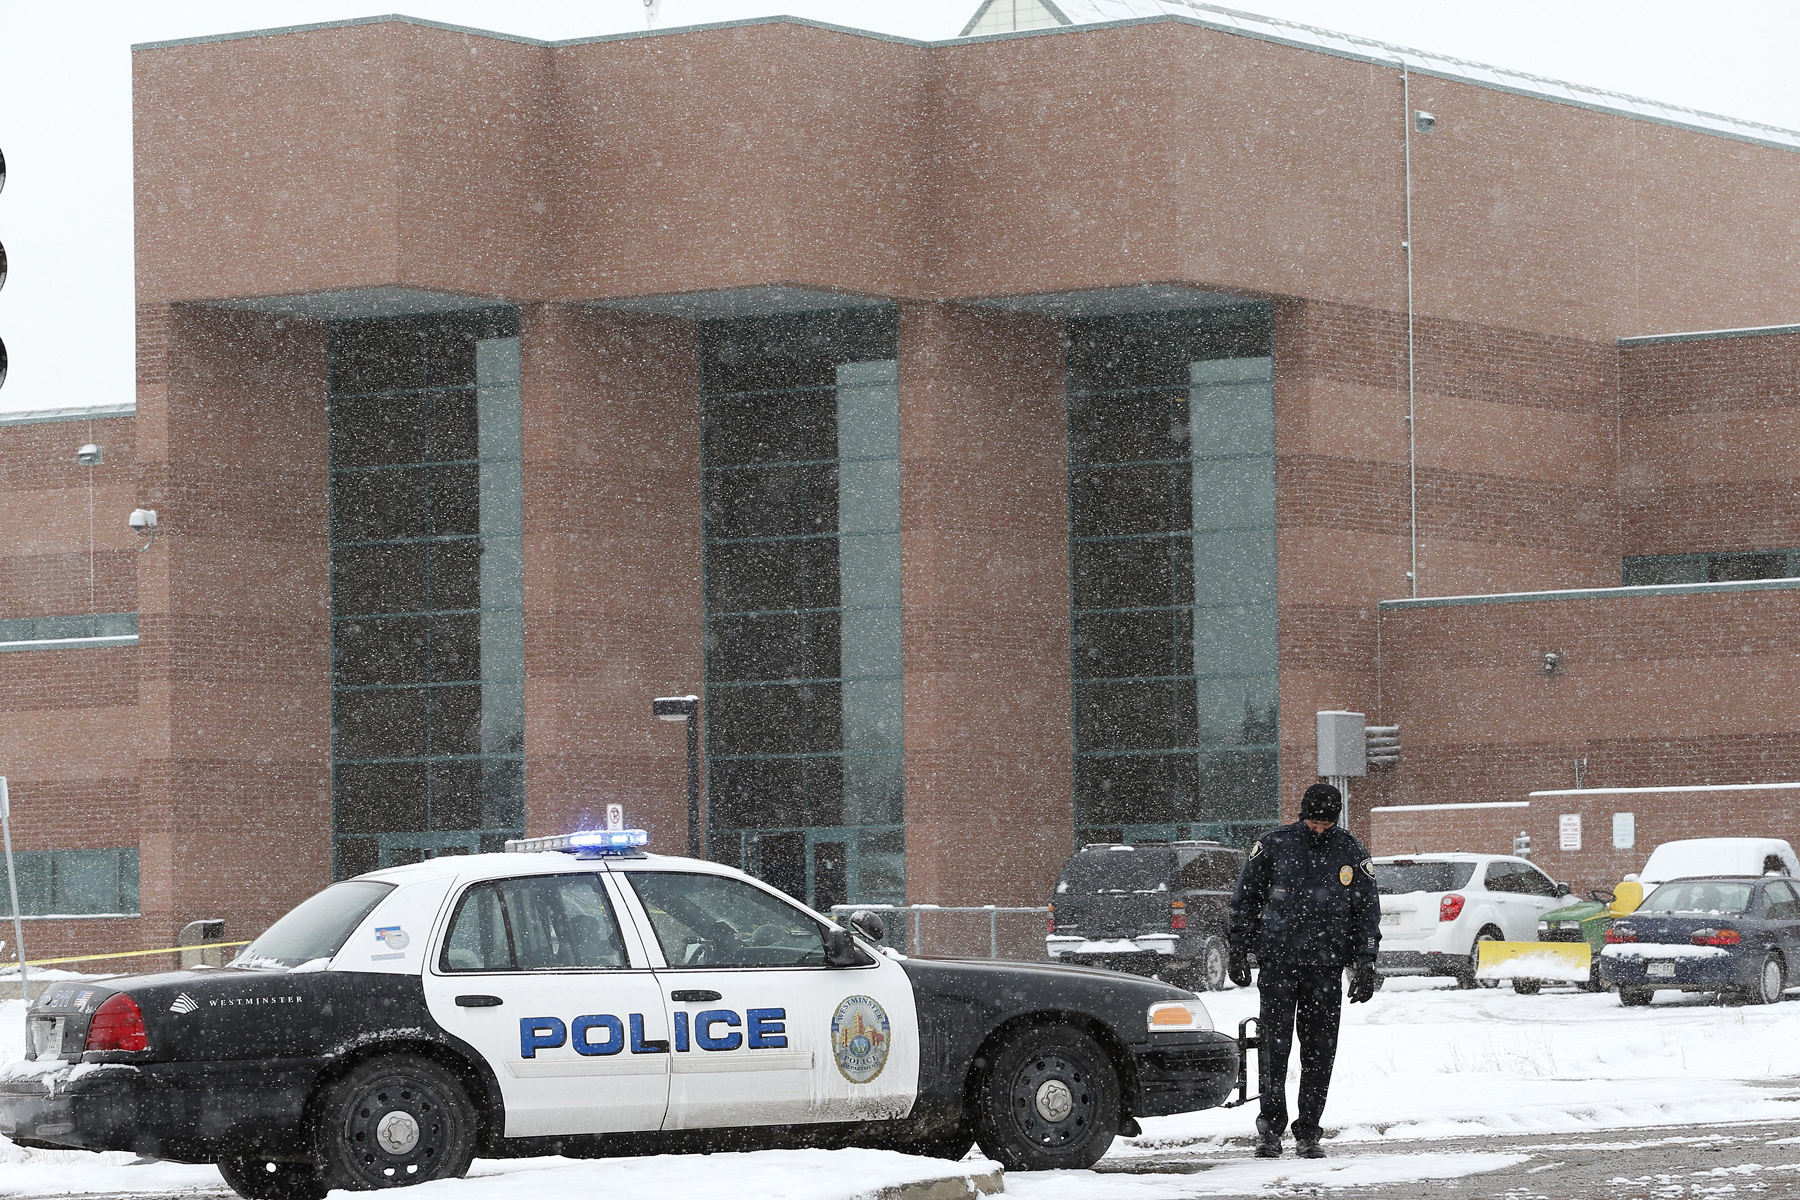 A police cruiser blocks the entrance to Standley Lake HIgh School after an apparent suicide attempt by a student, in Westminster, Colo., Monday, Jan. 27, 2014.